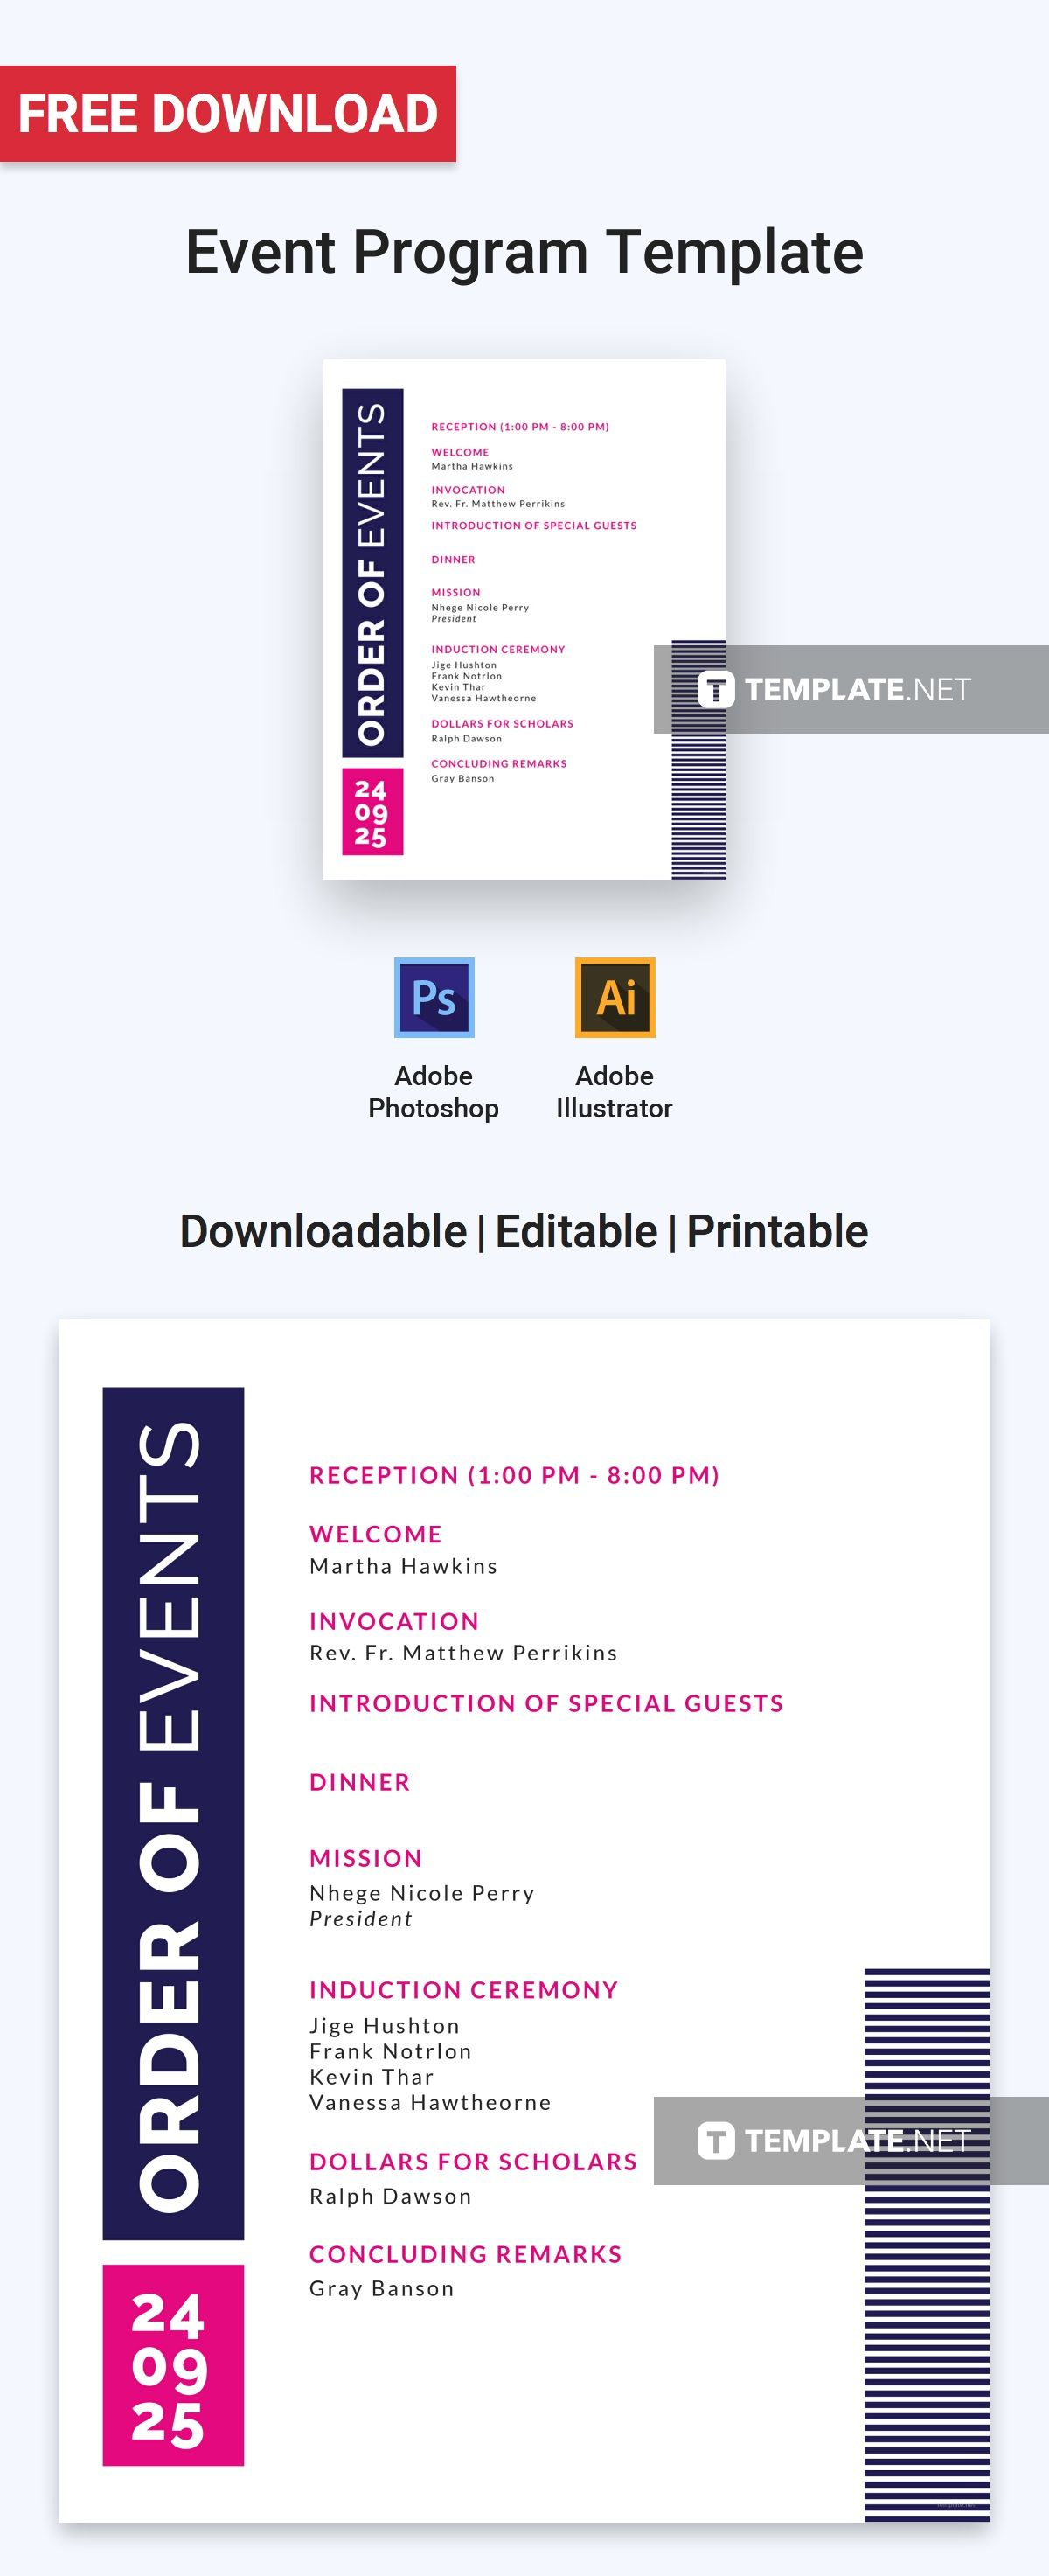 Download Free Event Program Template For Personal Business Use Professionally Designed Free Program Tem Event Program Free Program Templates Program Template